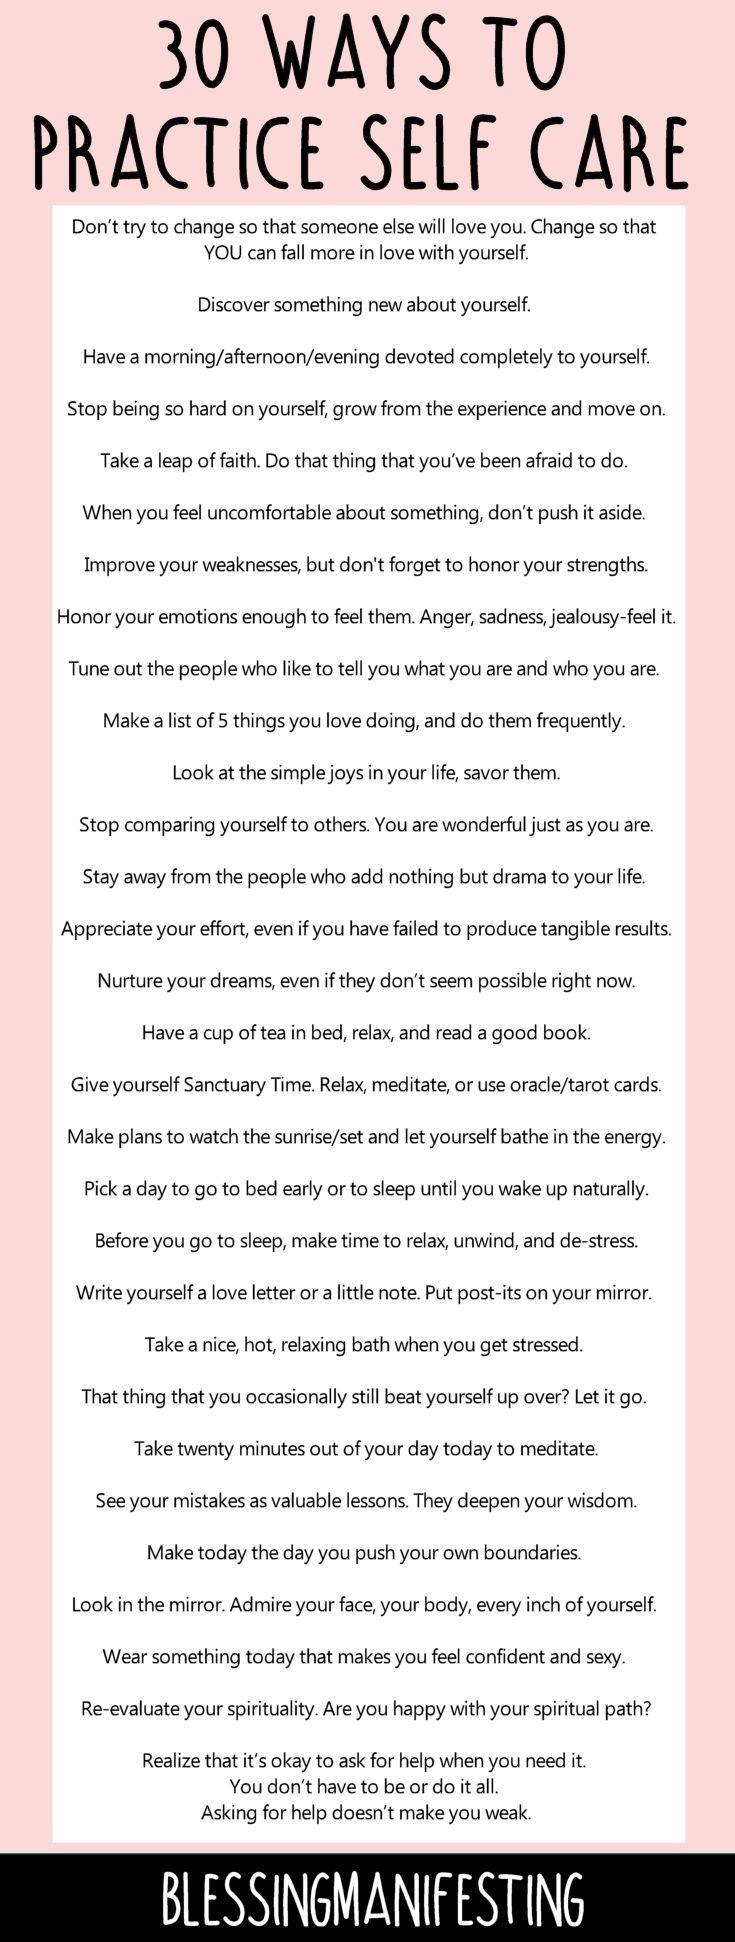 60 ways to practice self care and love yourself!